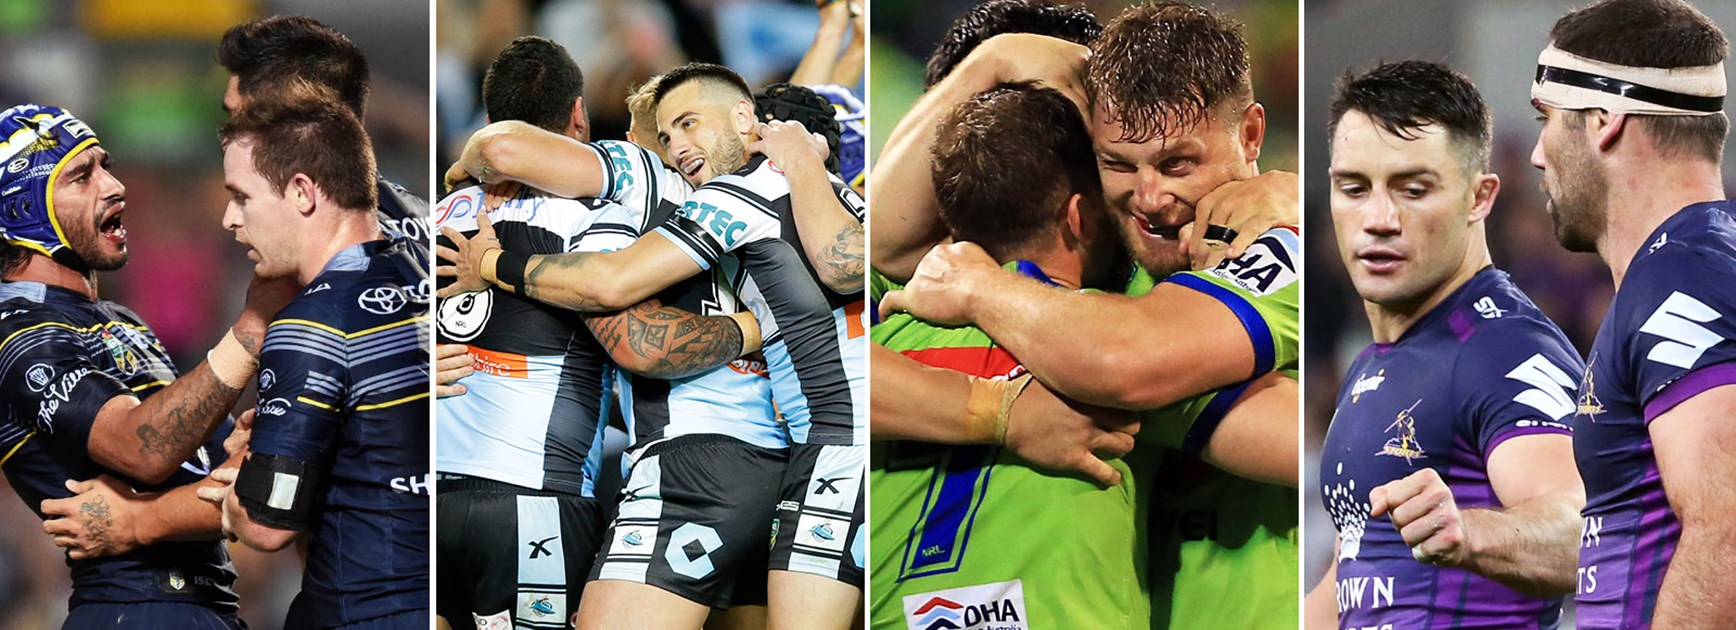 The Cowboys, Sharks, Raiders and Storm will be looking to remain at the top of the league next season.